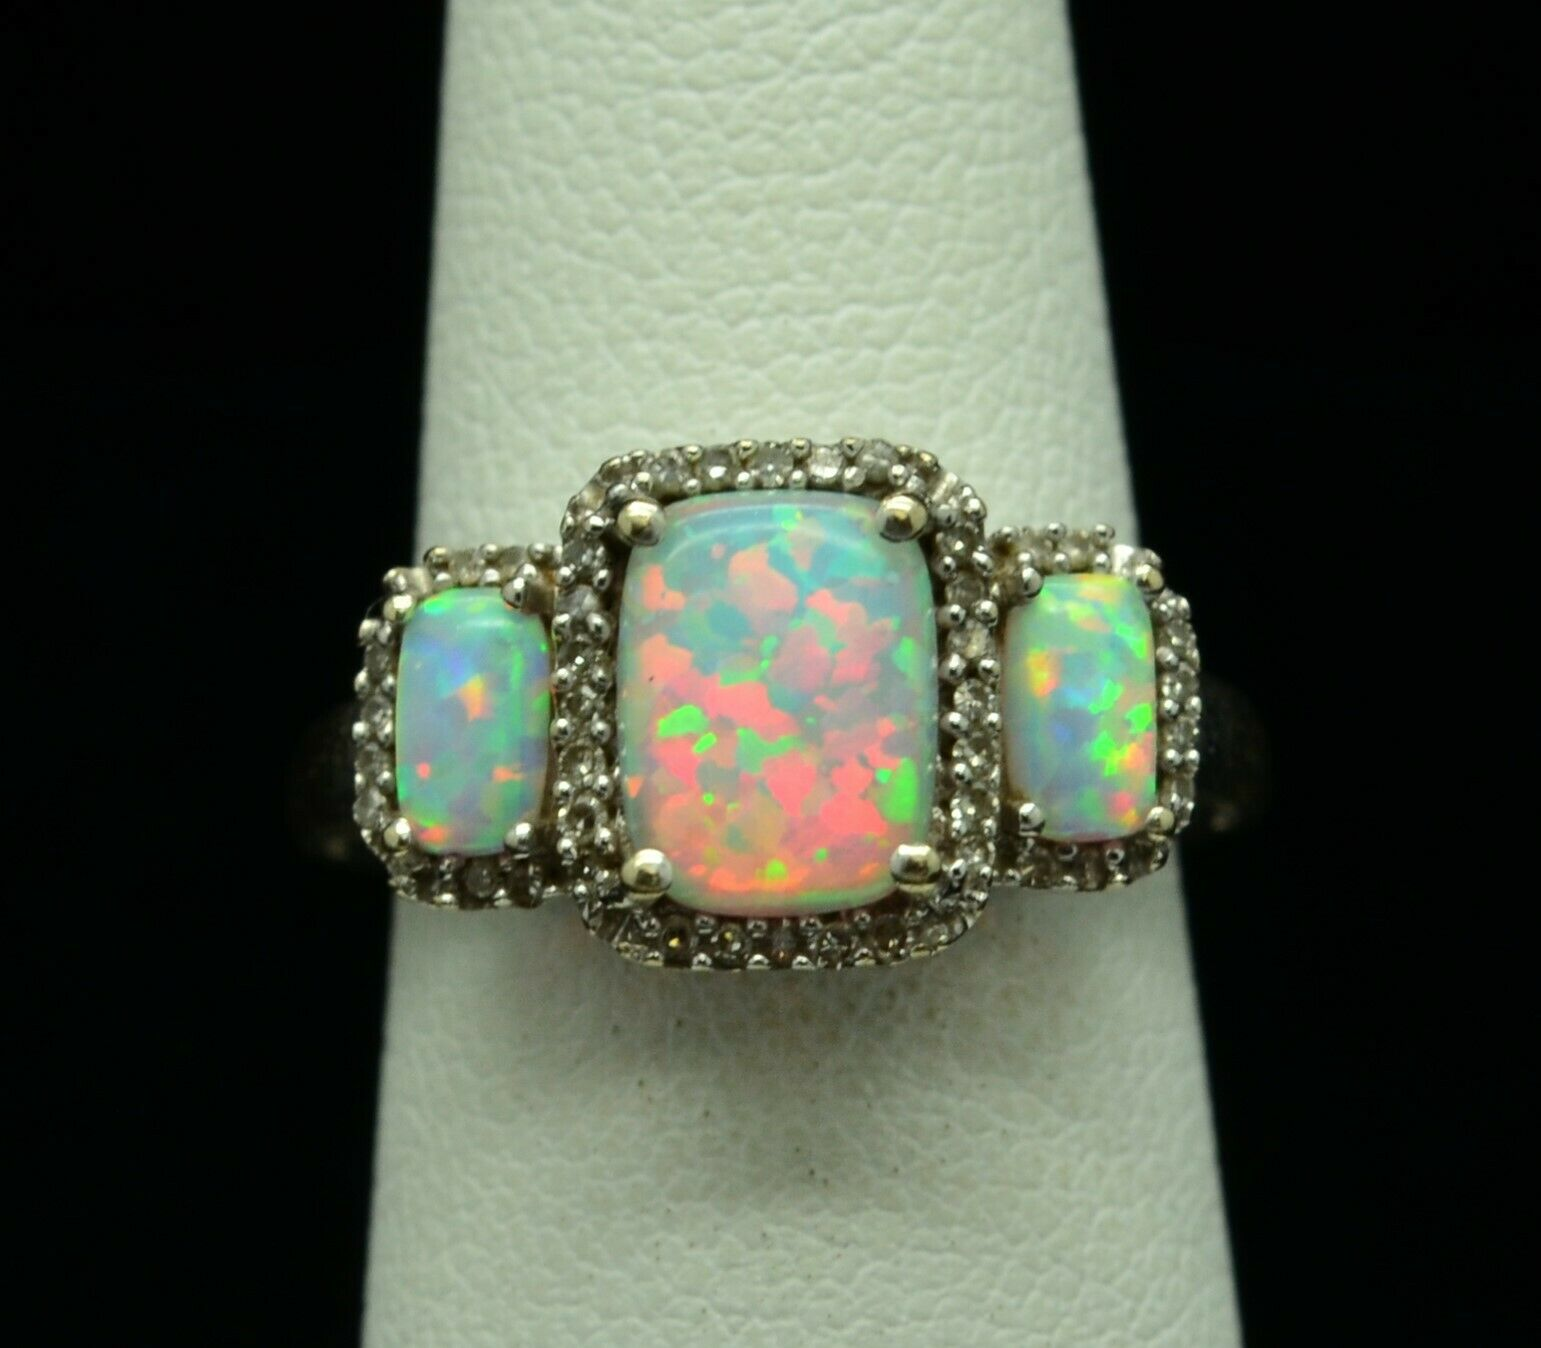 14K WHITE gold 3 OPAL WITH DIAMOND ACCENTS RING JWBR SZ 4.5 gold-240